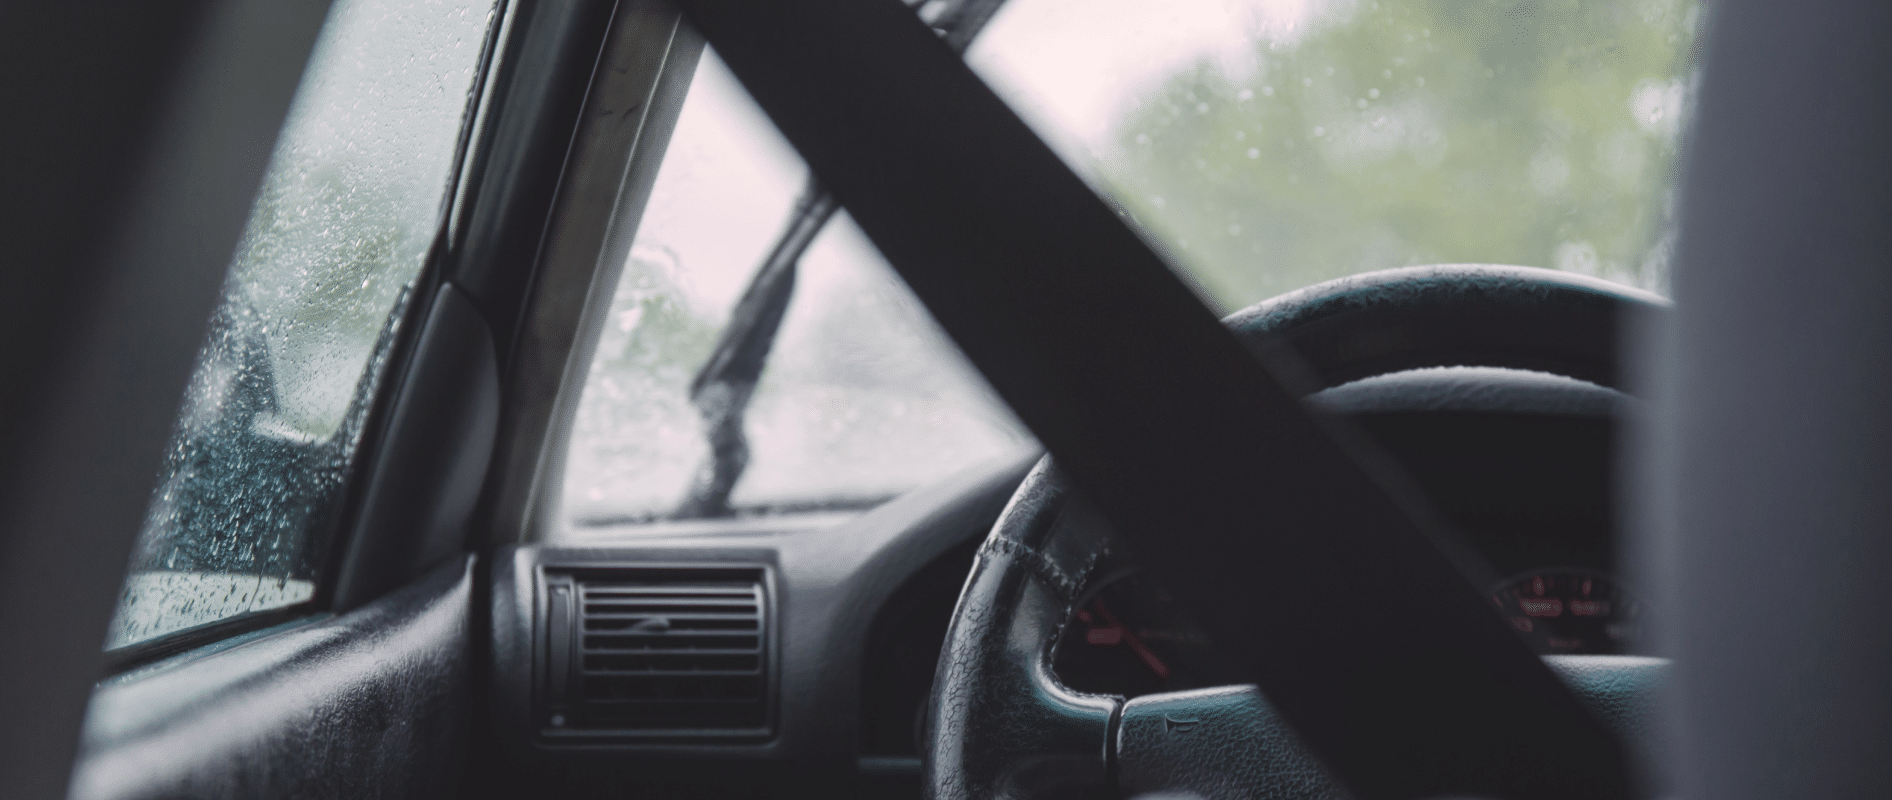 Sit Tight! 3 Reasons Your Car's Seatbelt Won't Release or Retract.